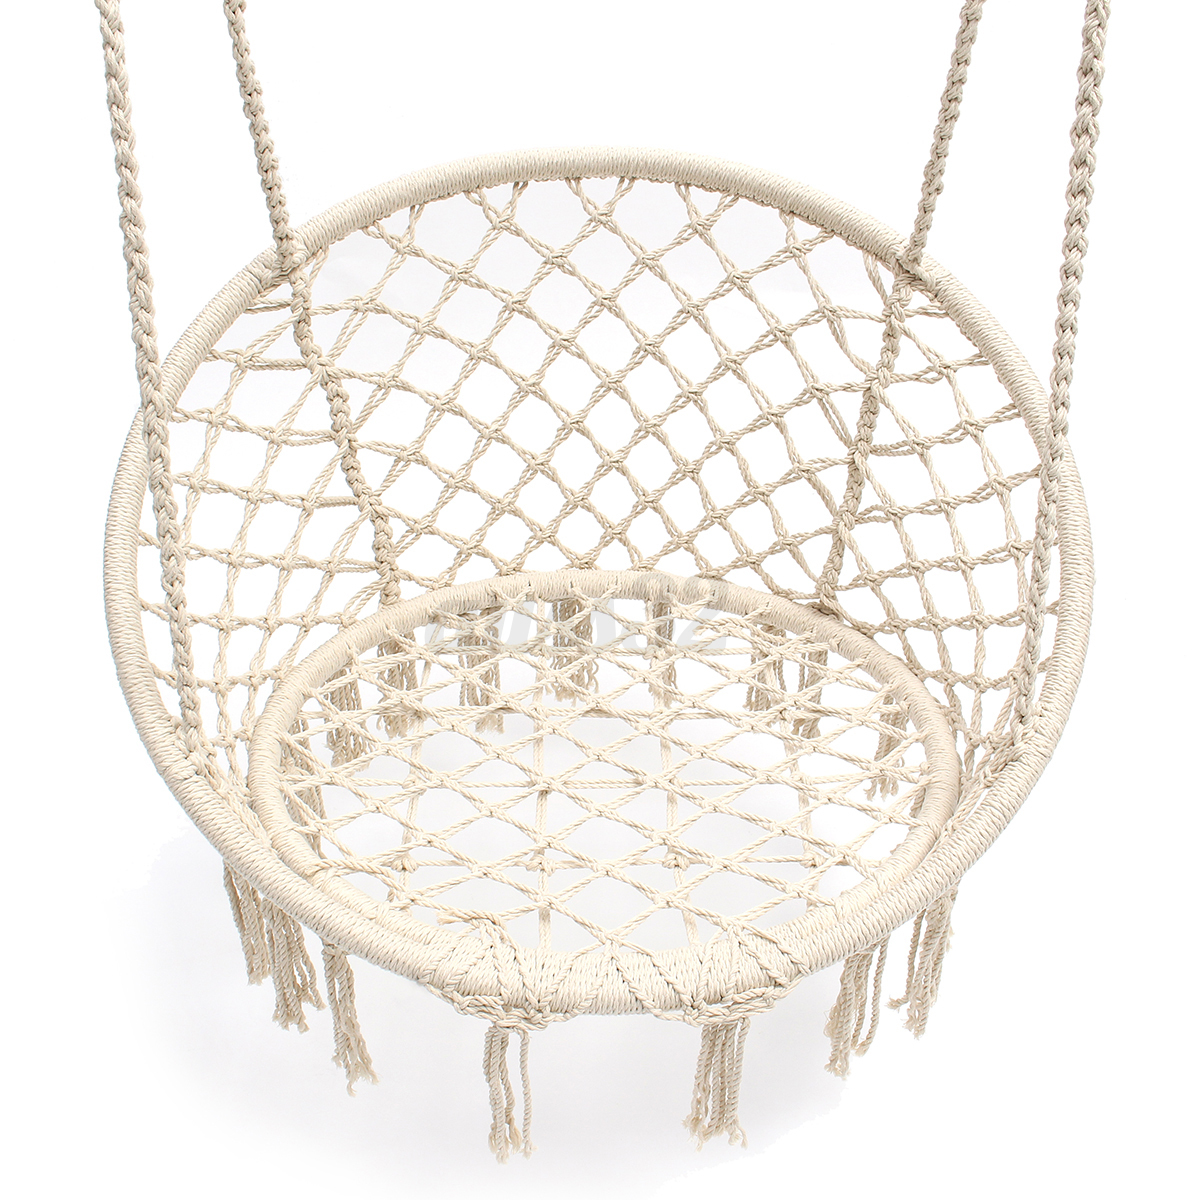 Beige hanging cotton rope macrame hammock chair swing for Macrame hanging chair